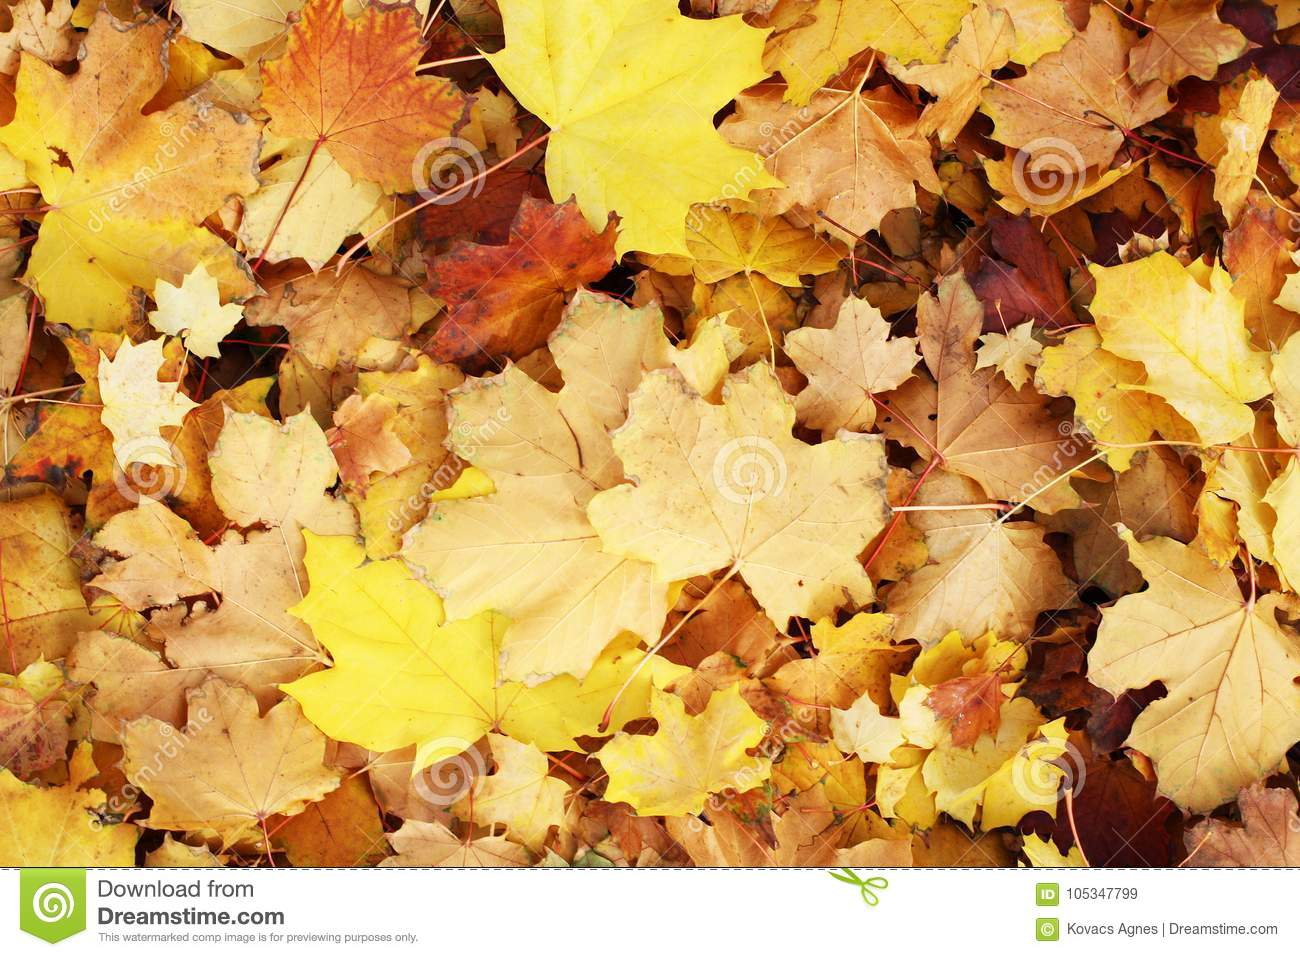 Beautiful Autumn Fall Leaf Leaves Texture Background Yellow Brown Vibrant Colorful Pattern Closeup Wallpaper